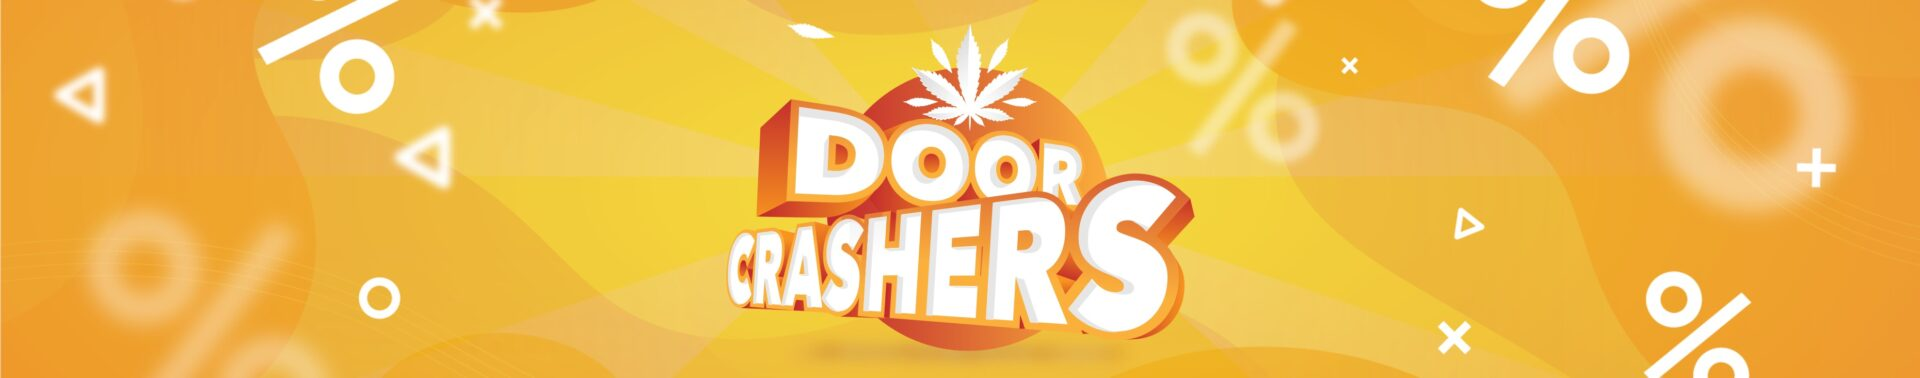 Door Crashers -- get them while they are here!